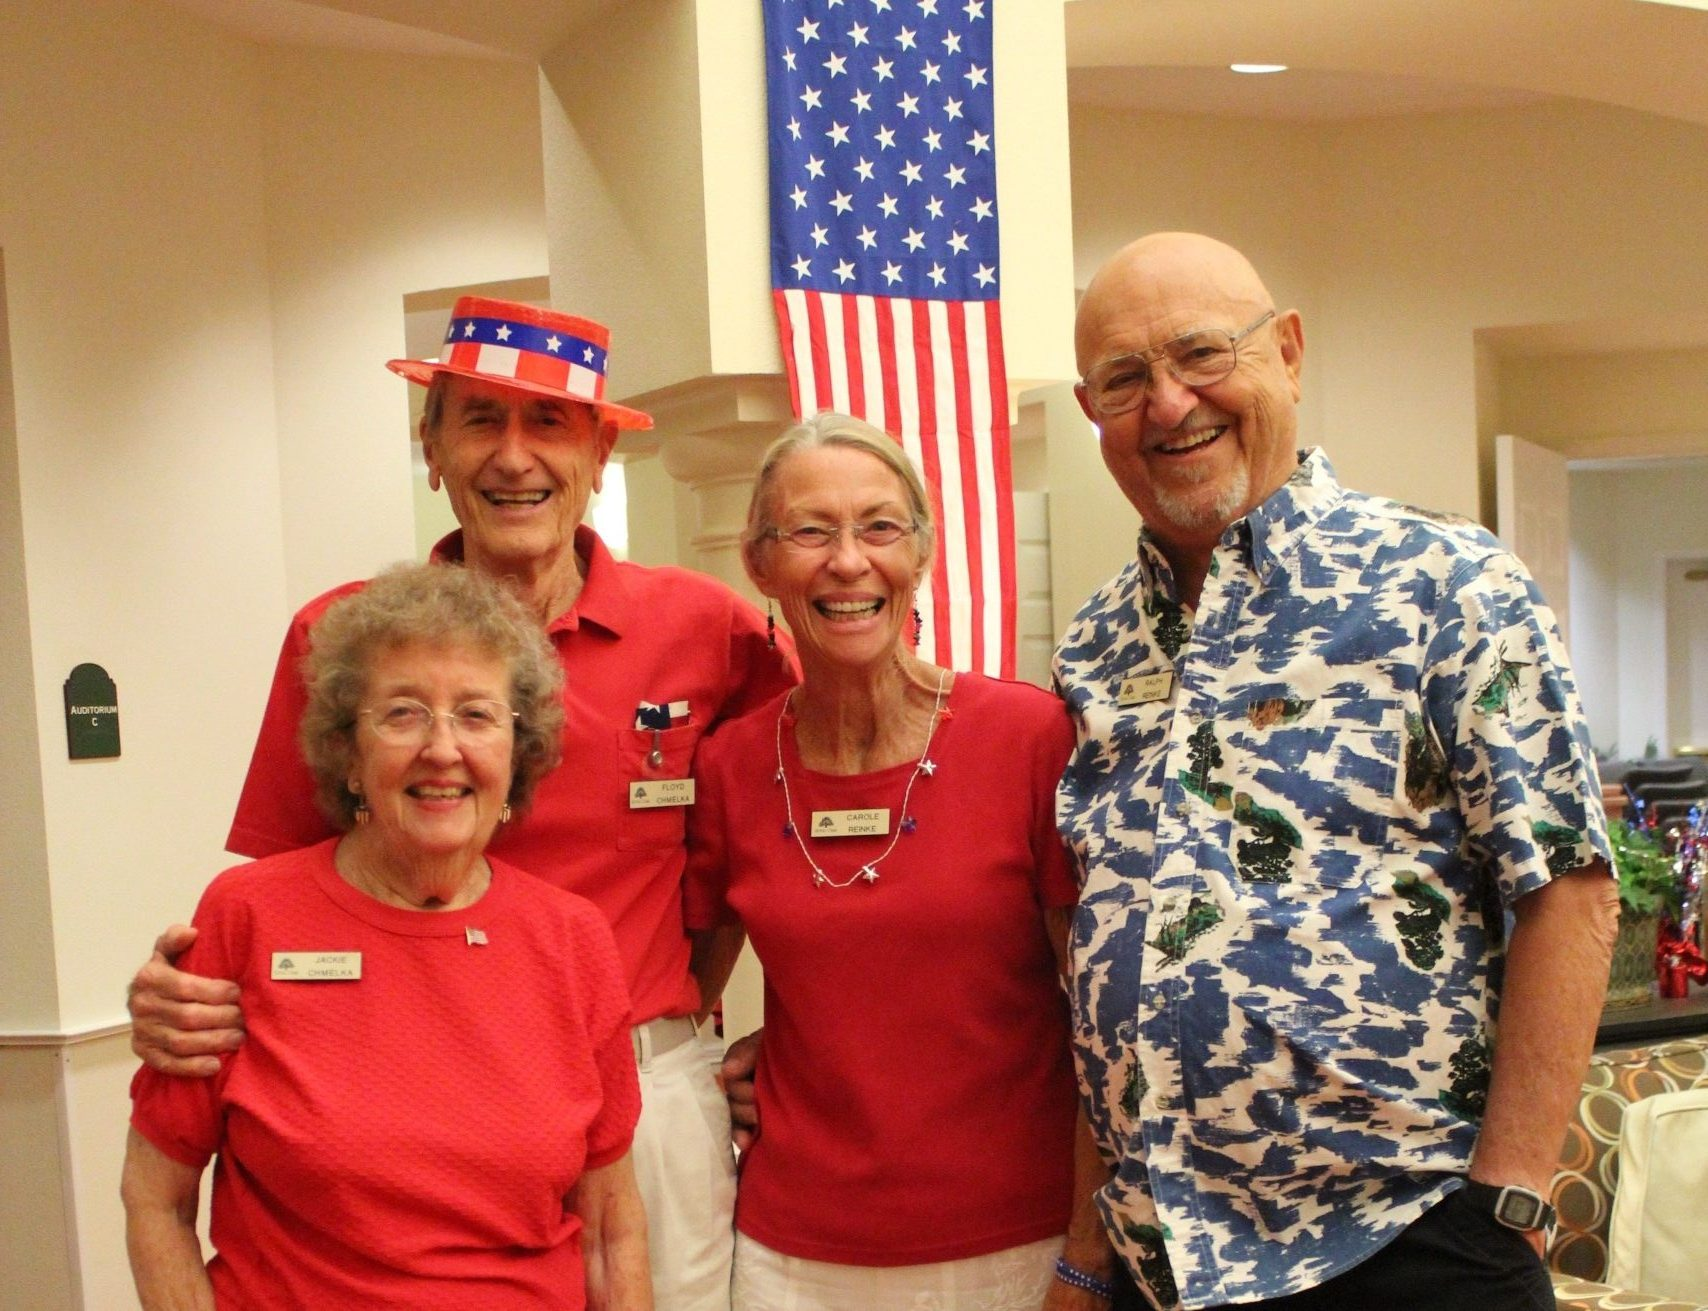 Royal Oaks residents celebrated our country's birthday in grand style with dancing and frivolity